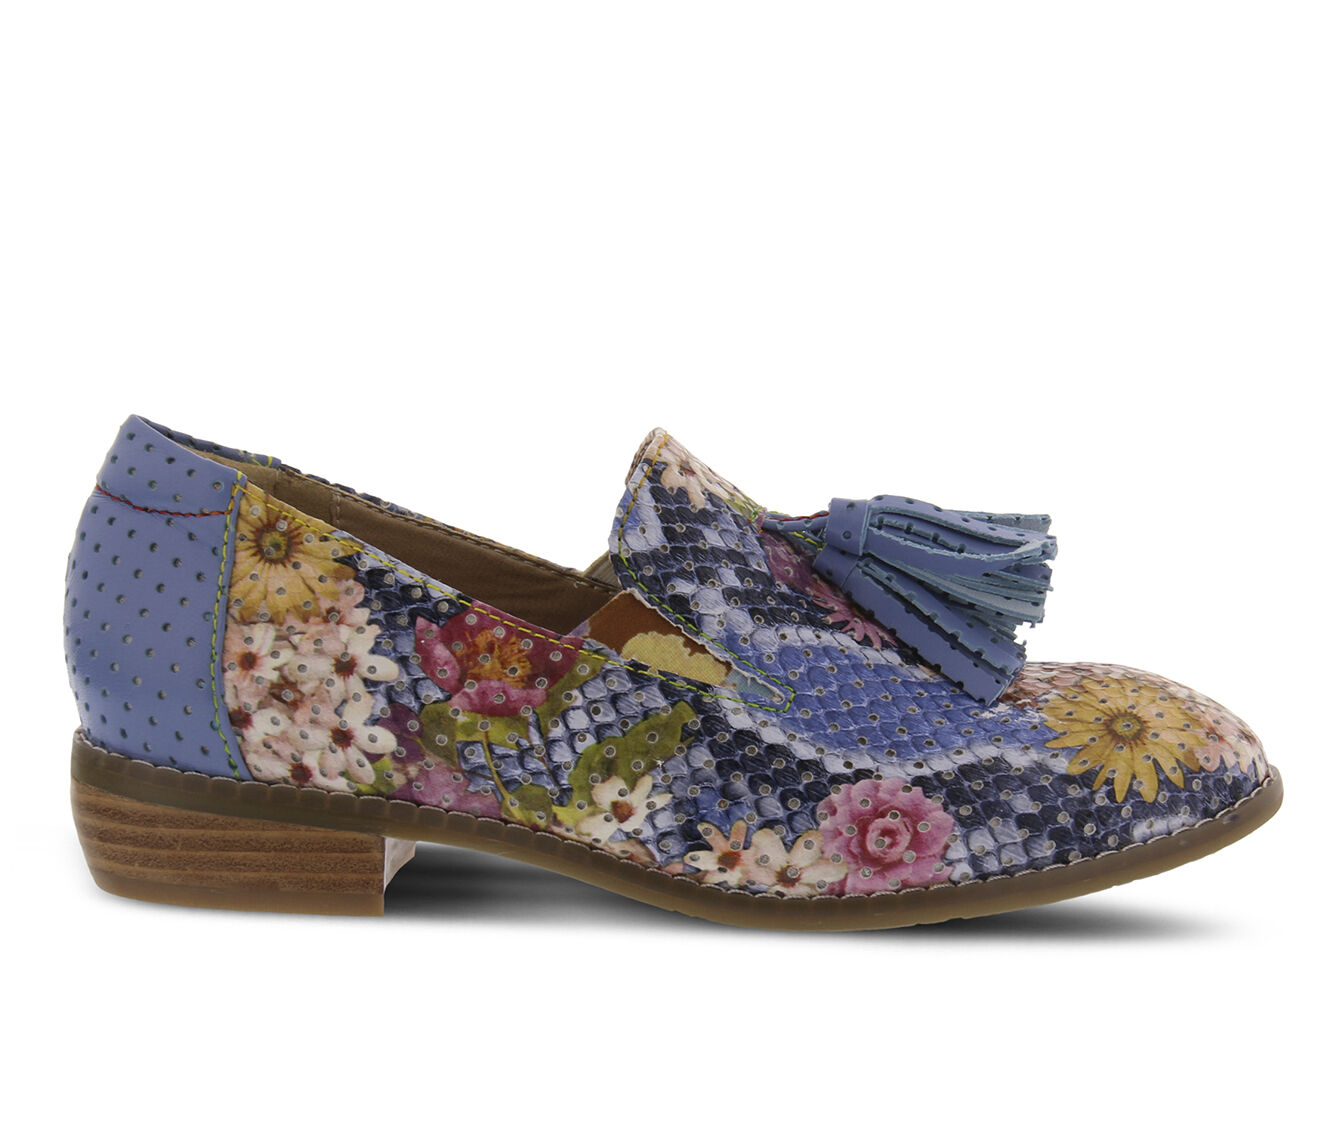 Women's L'ARTISTE Klasik-Flower Shoes Blue Multi